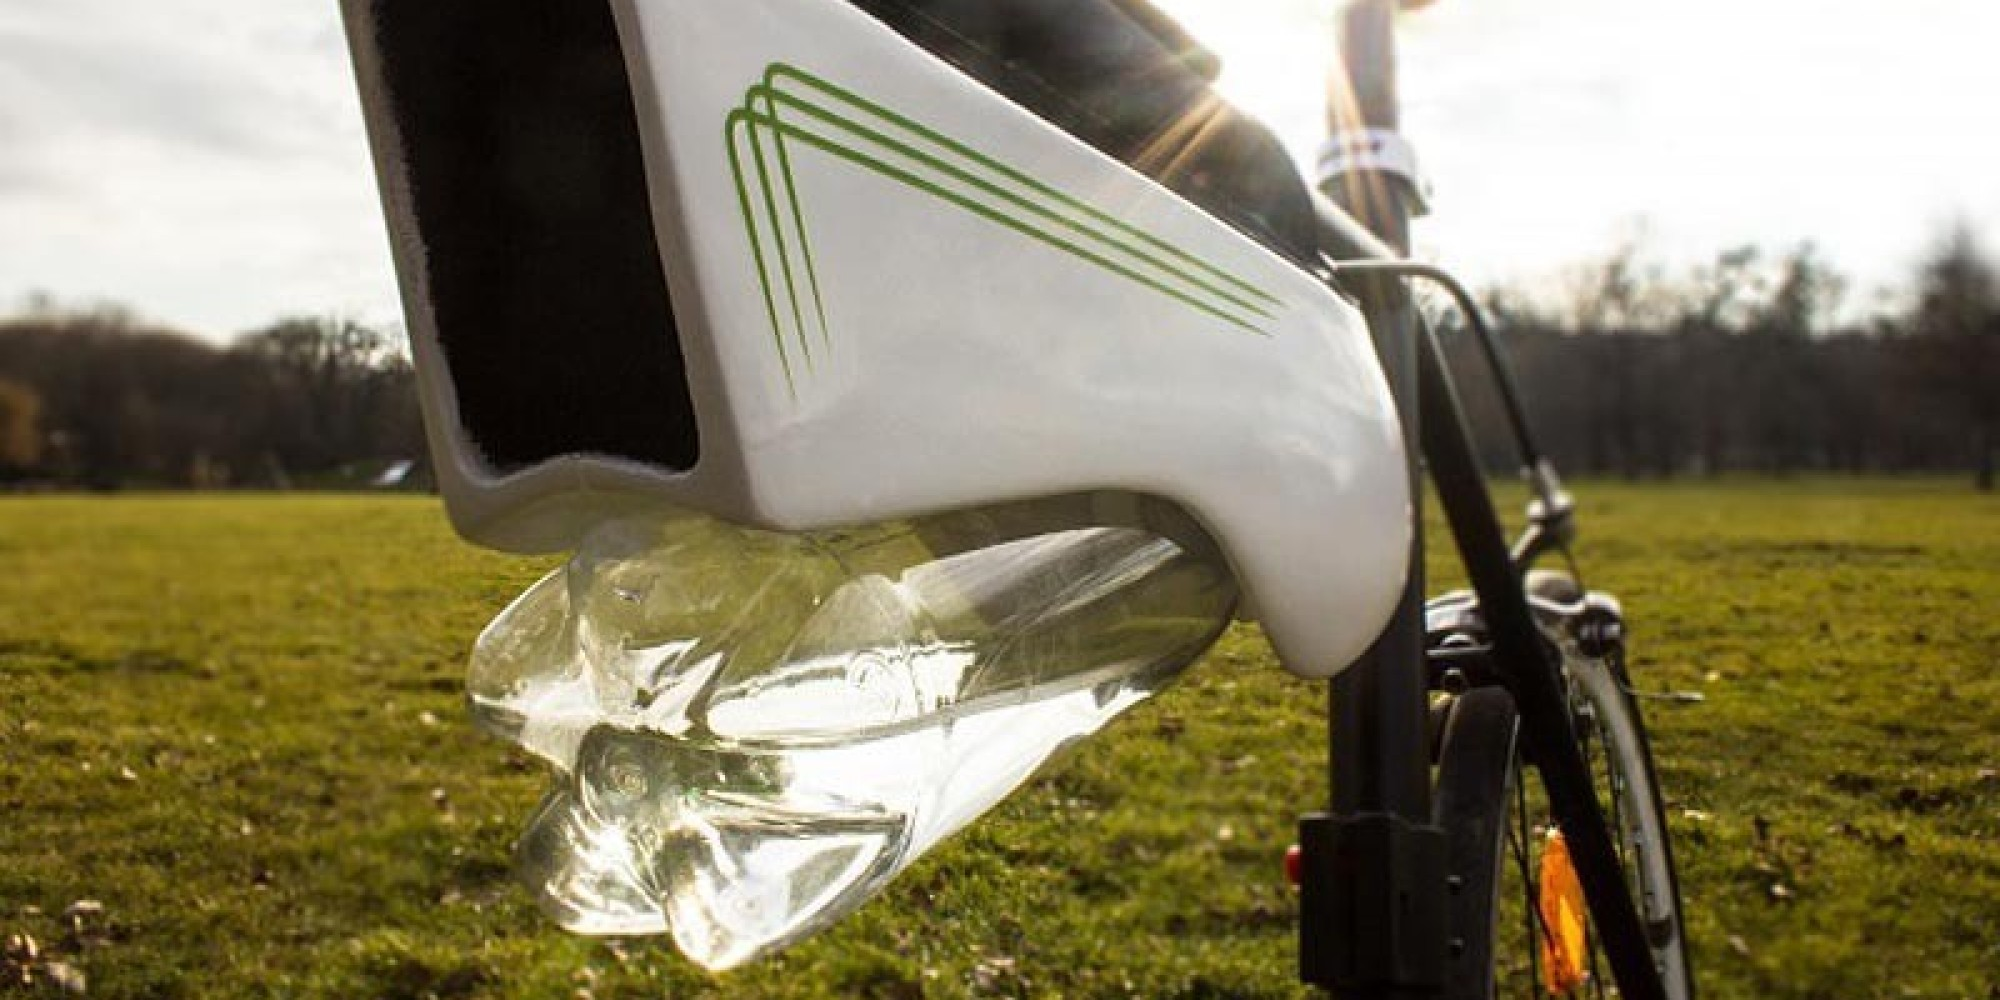 Fontus, Solar Powered Device That Harvests Water From Air ...